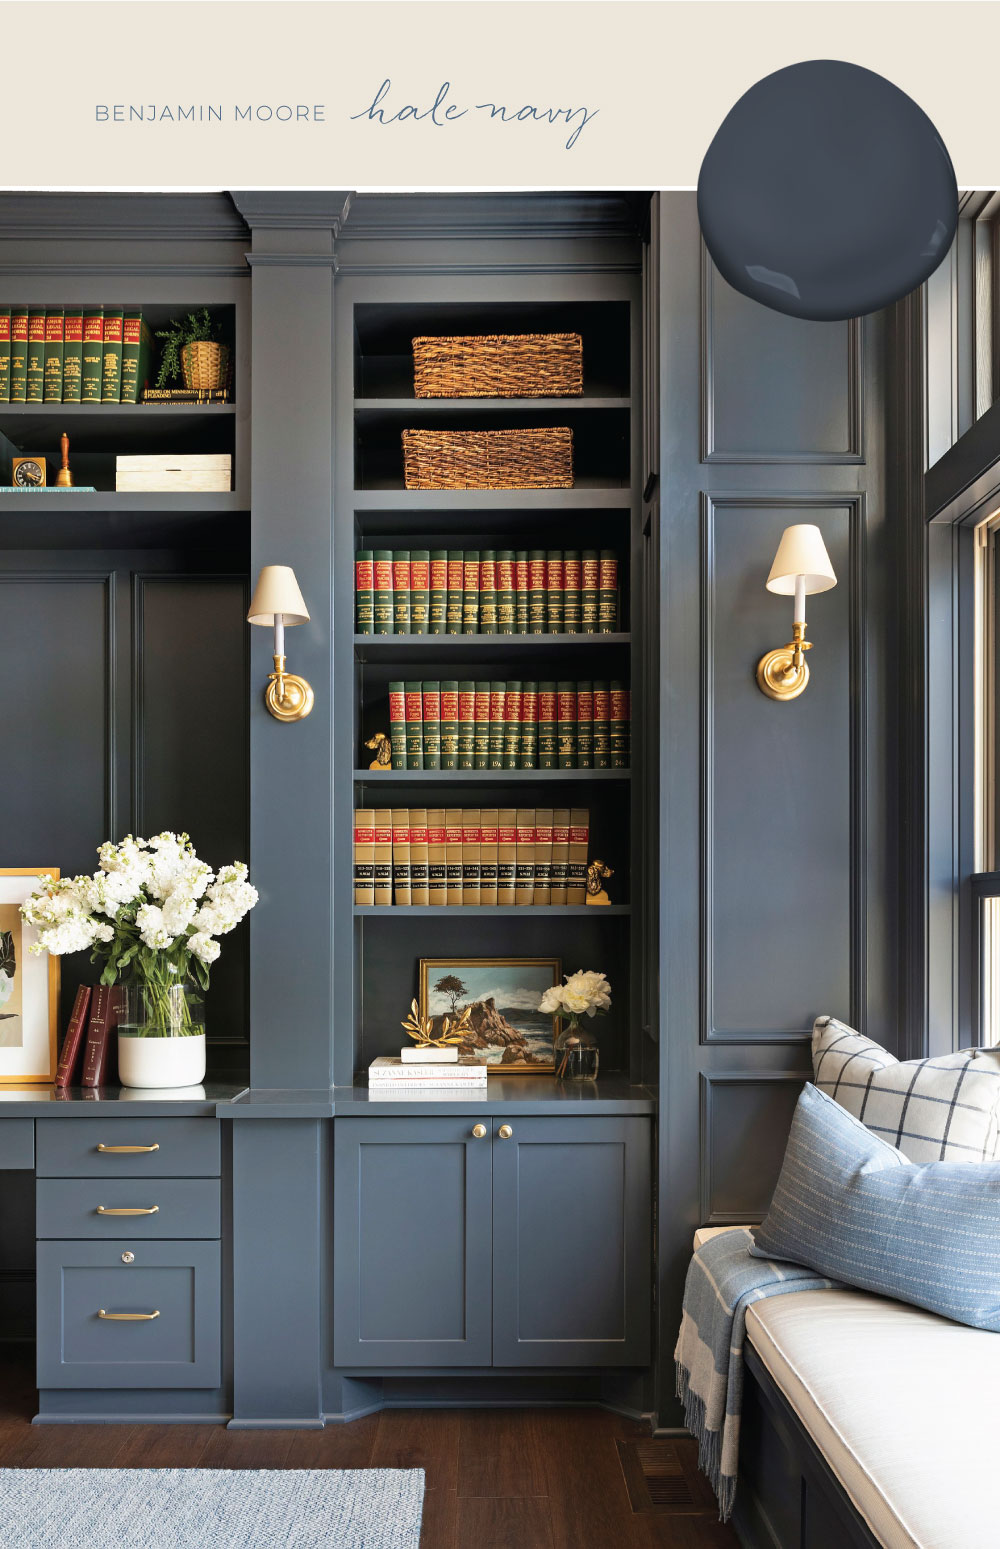 Our Favorite Blue And Gray Paint Colors Bria Hammel Interiors,Small Kitchen Updates On A Budget